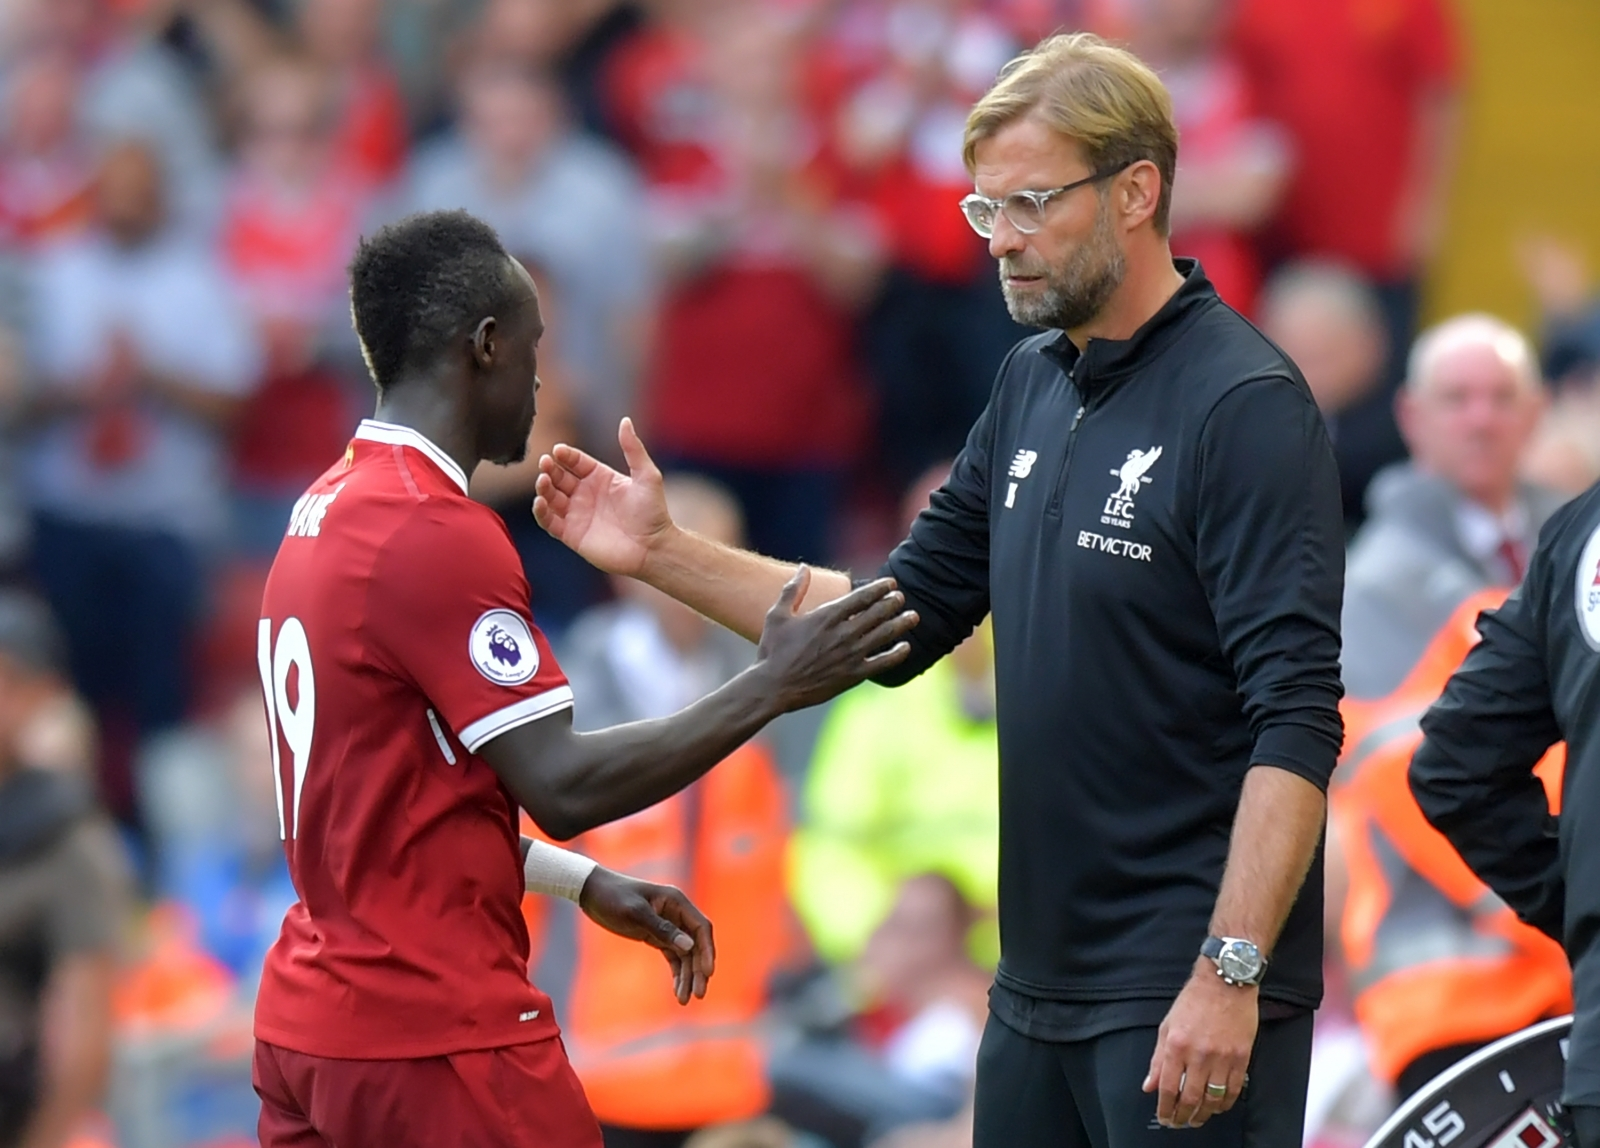 Sadio Mane and Jurgen Klopp